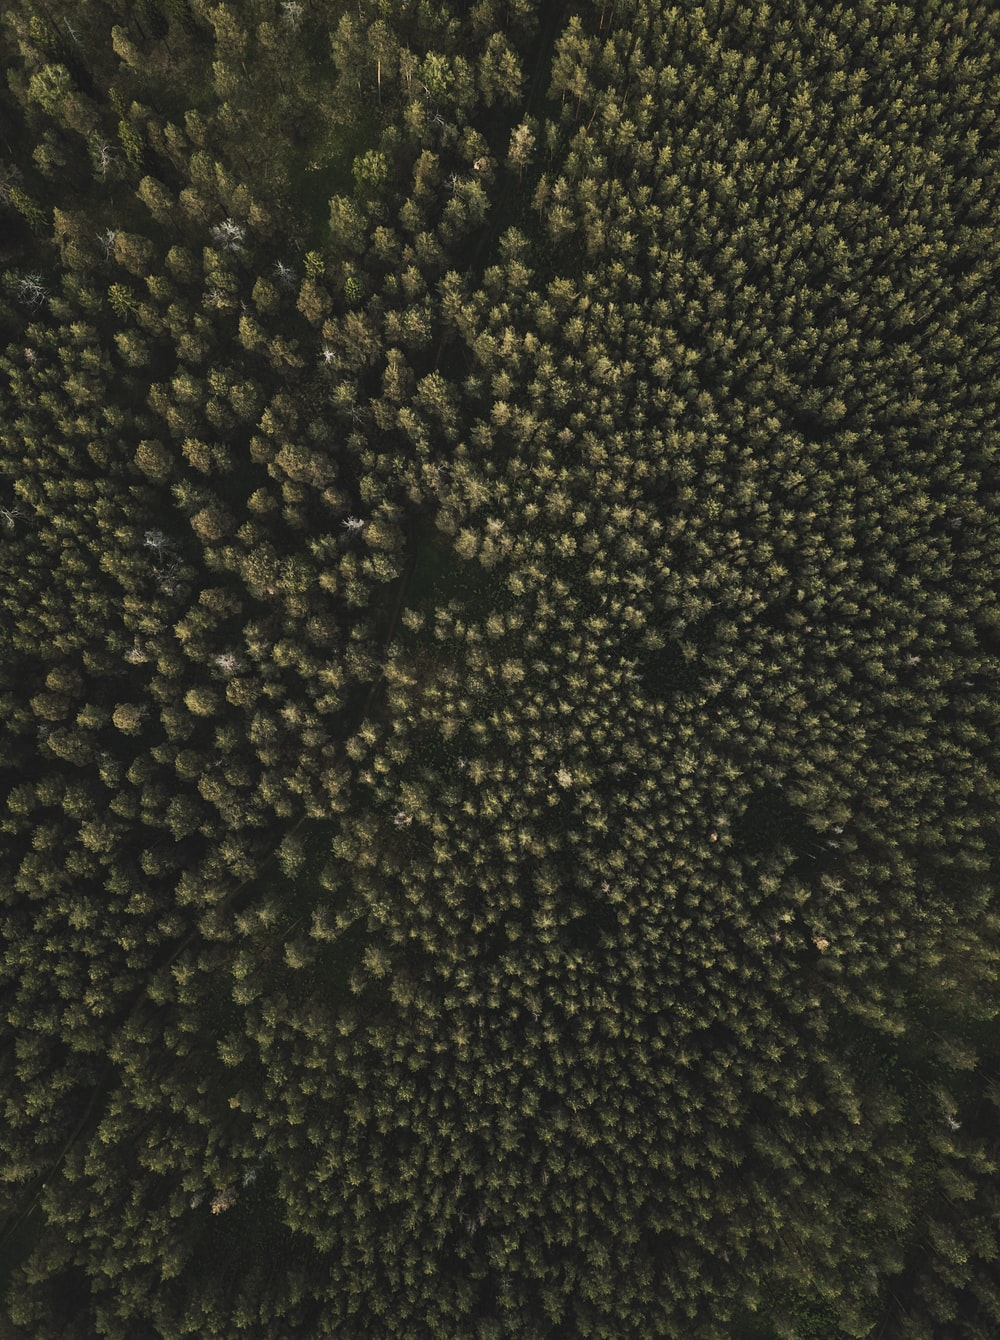 aerial photography of tall green trees